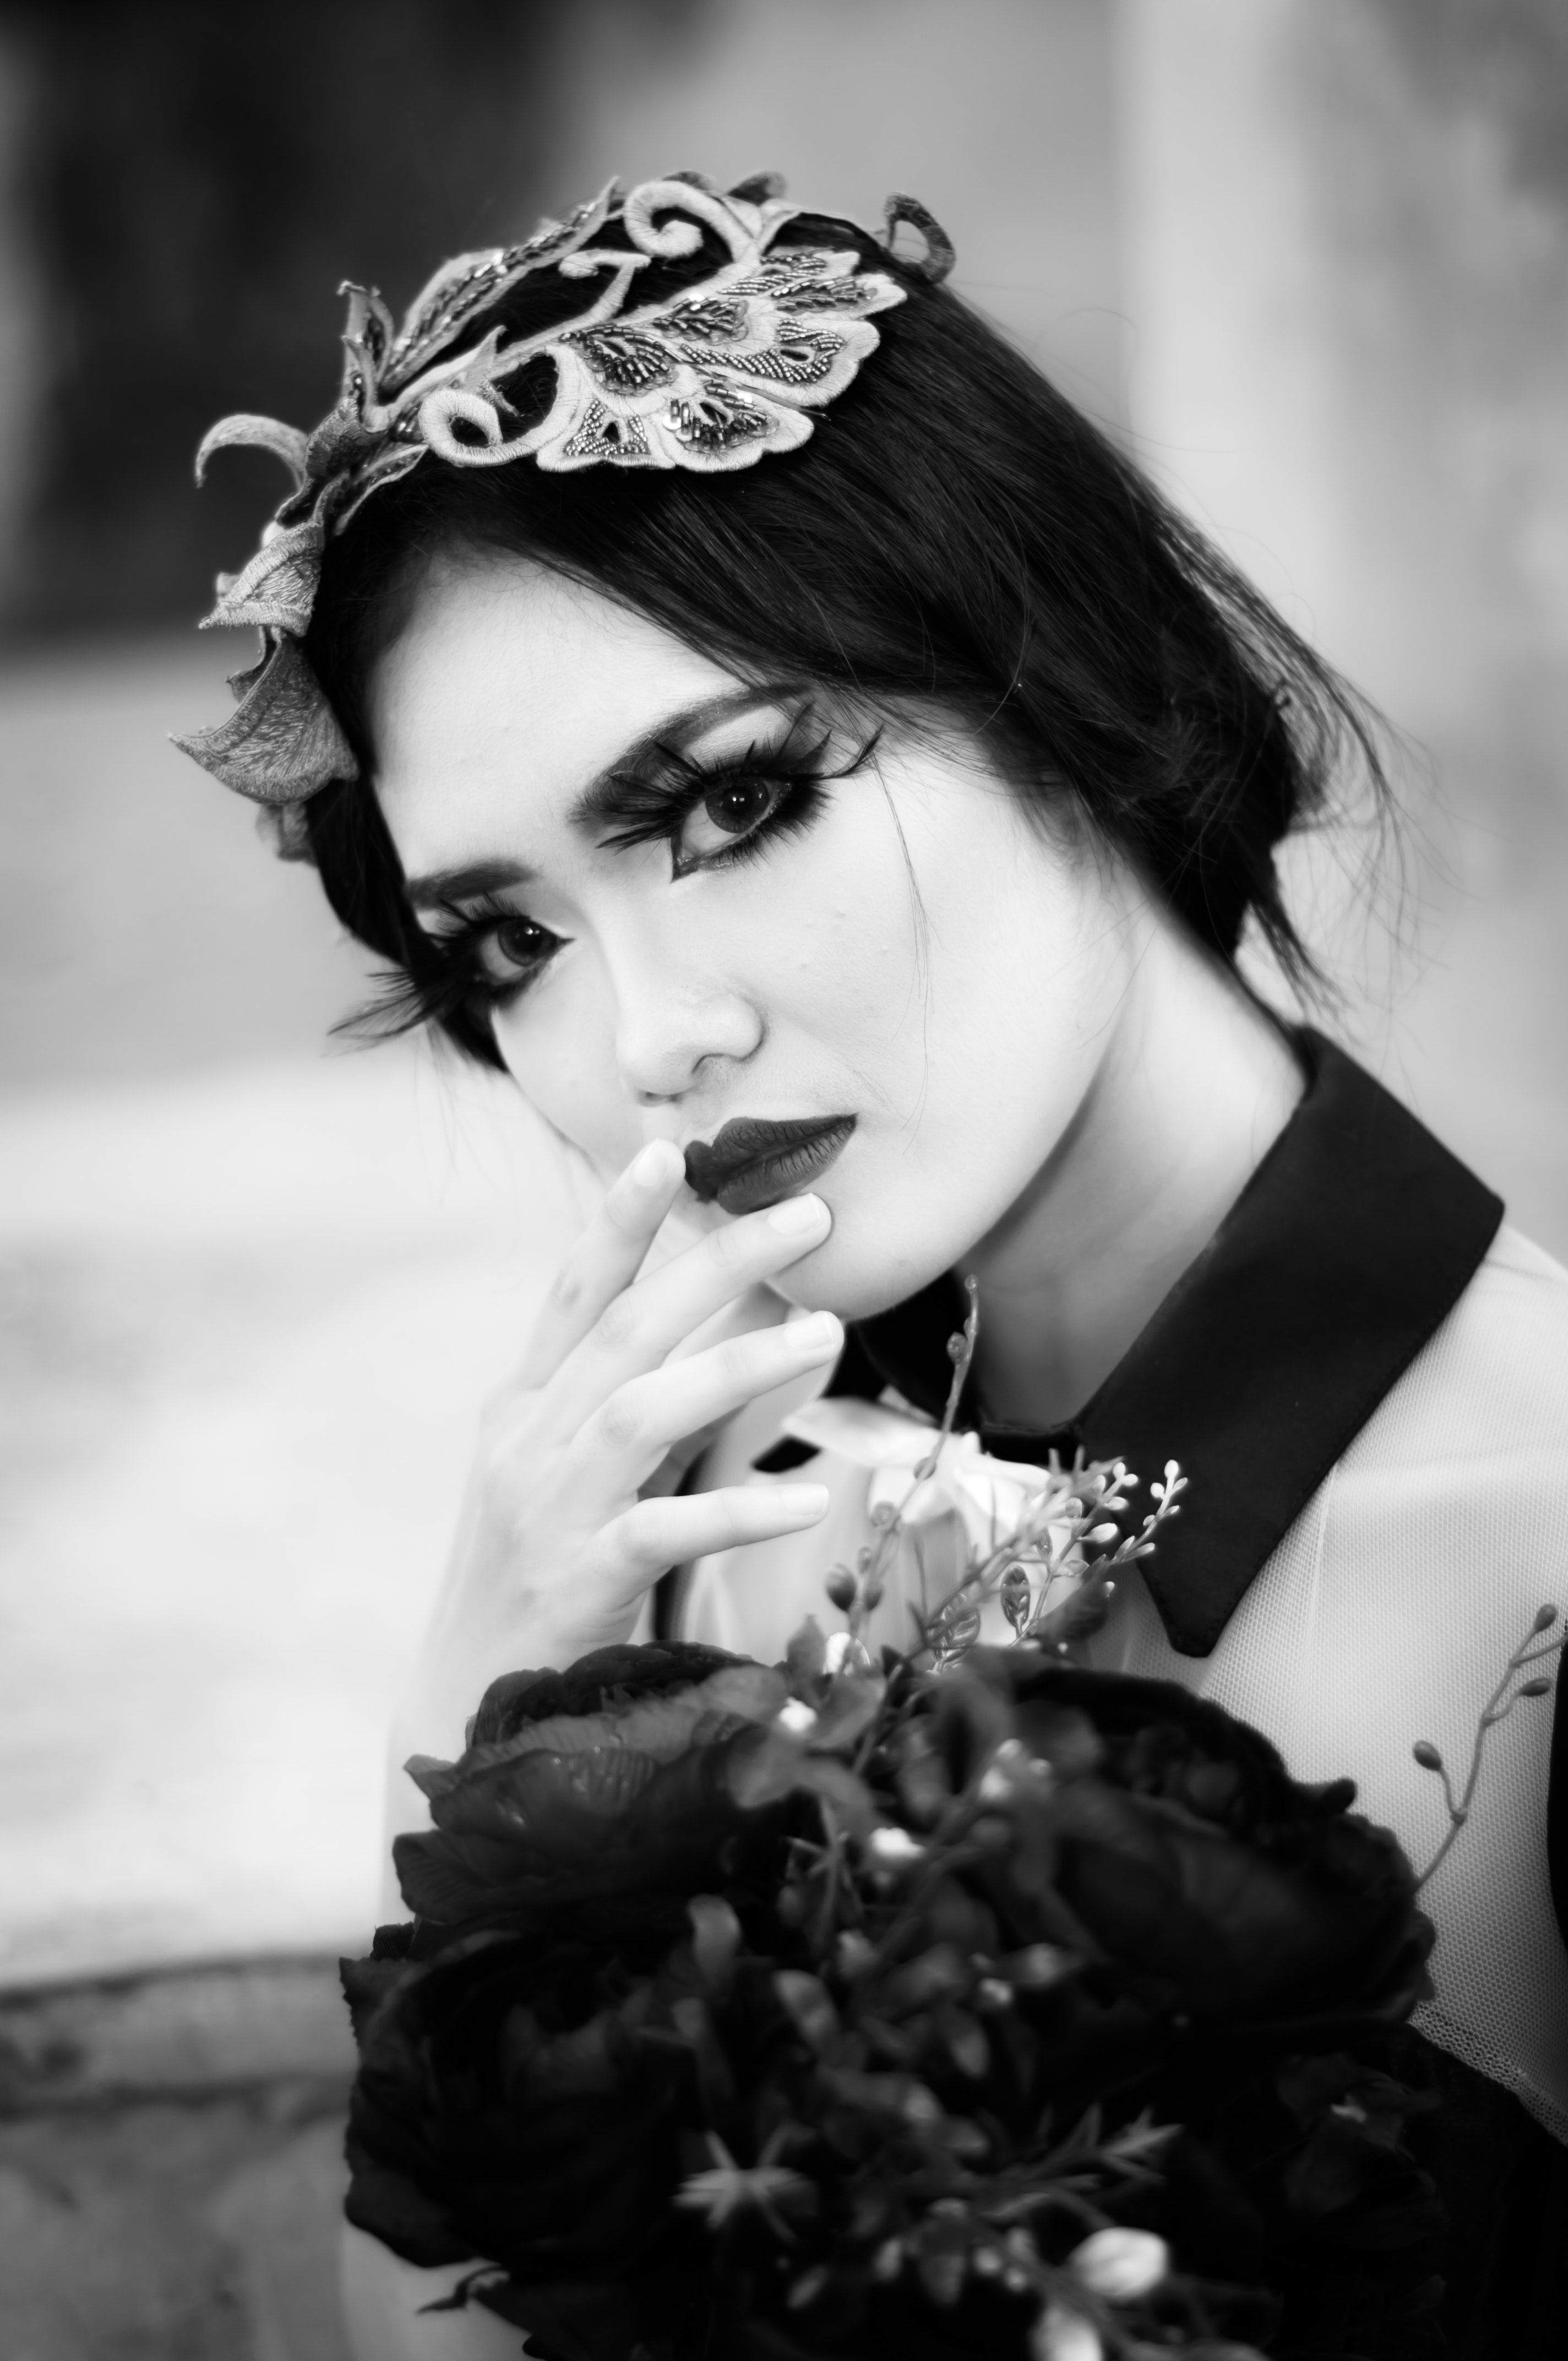 Grayscale photo of woman with flowers free stock photo free download izmirmasajfo